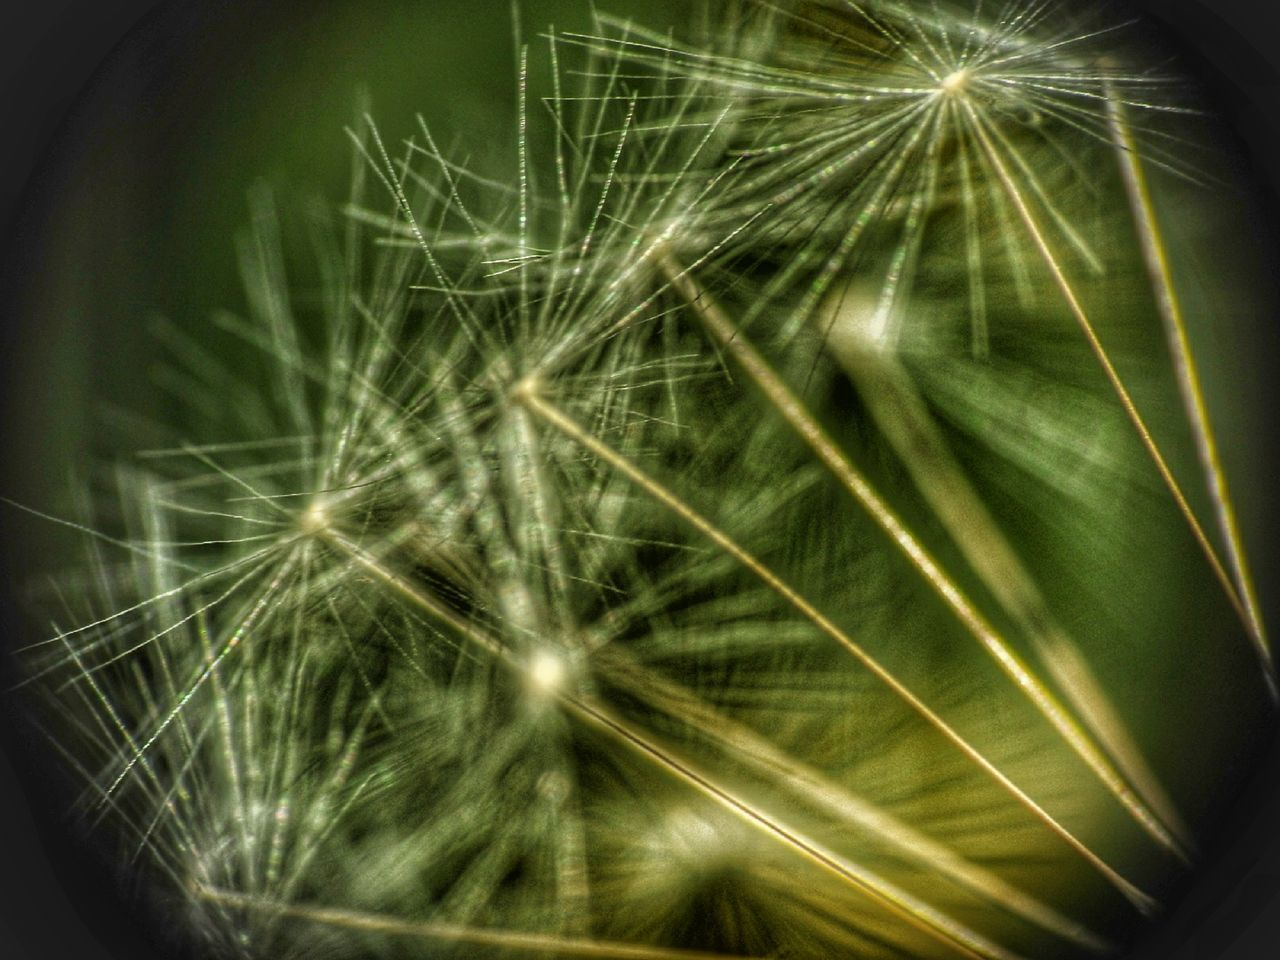 close-up, plant, selective focus, dandelion, beauty in nature, flower, growth, vulnerability, freshness, nature, fragility, no people, flowering plant, softness, extreme close-up, day, macro, dandelion seed, botany, outdoors, flower head